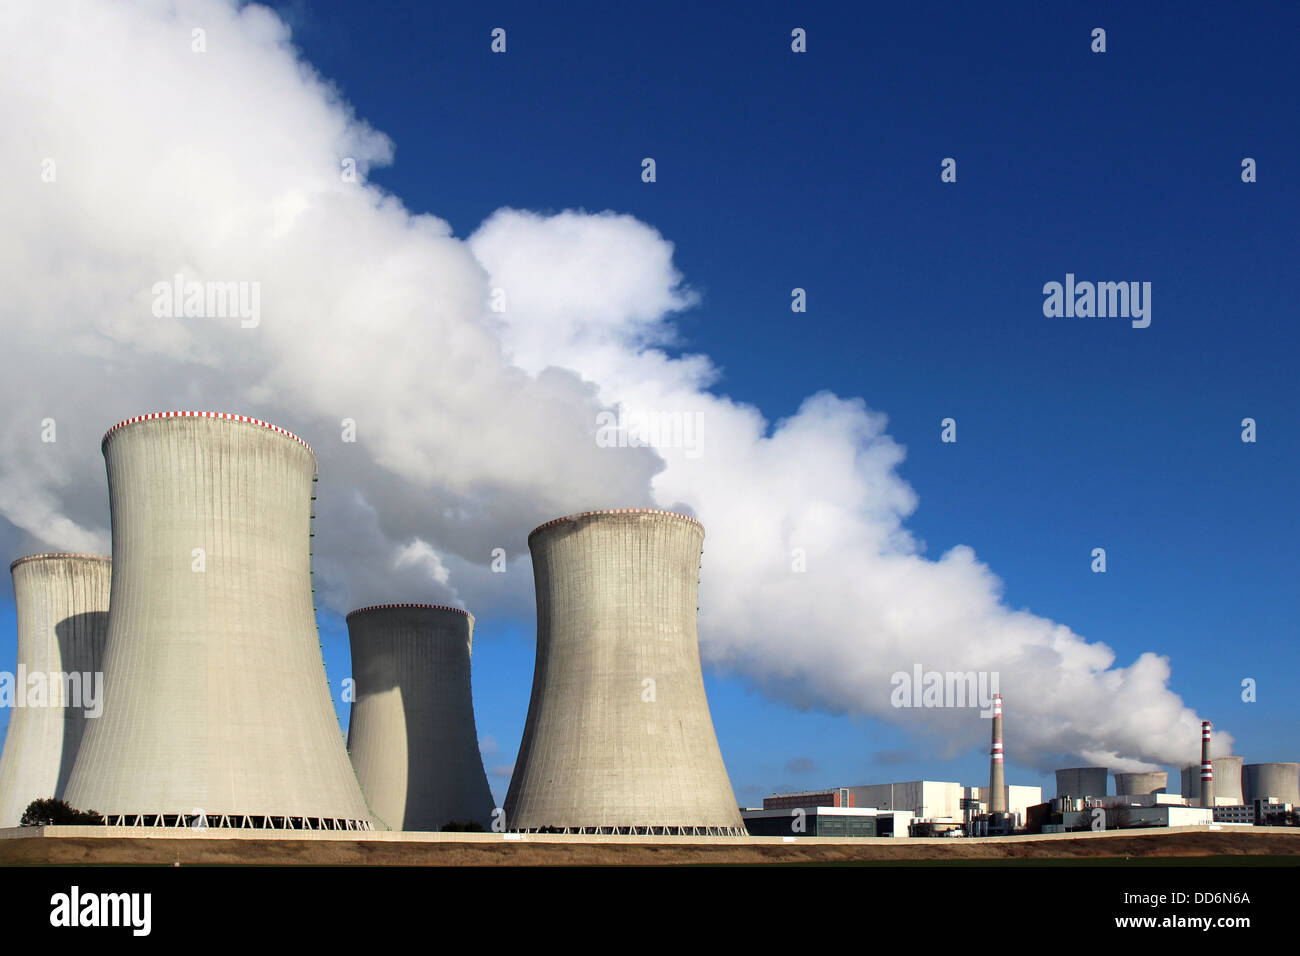 atomic power plant and huge smoke from cooling towers - Stock Image